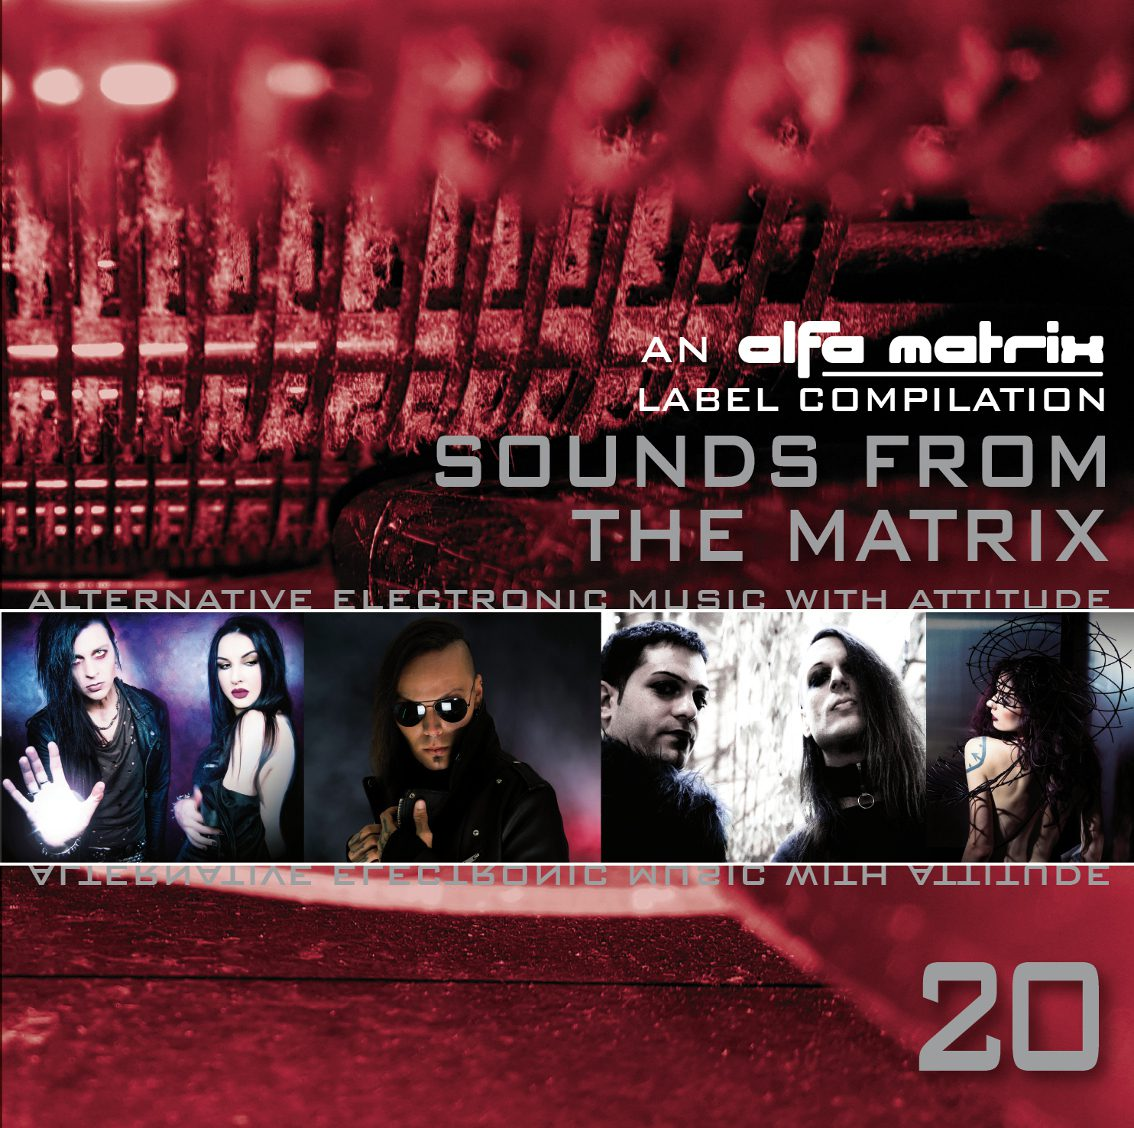 Alfa Matrix releases 'Sounds From The Matrix 20' on Bandcamp as well